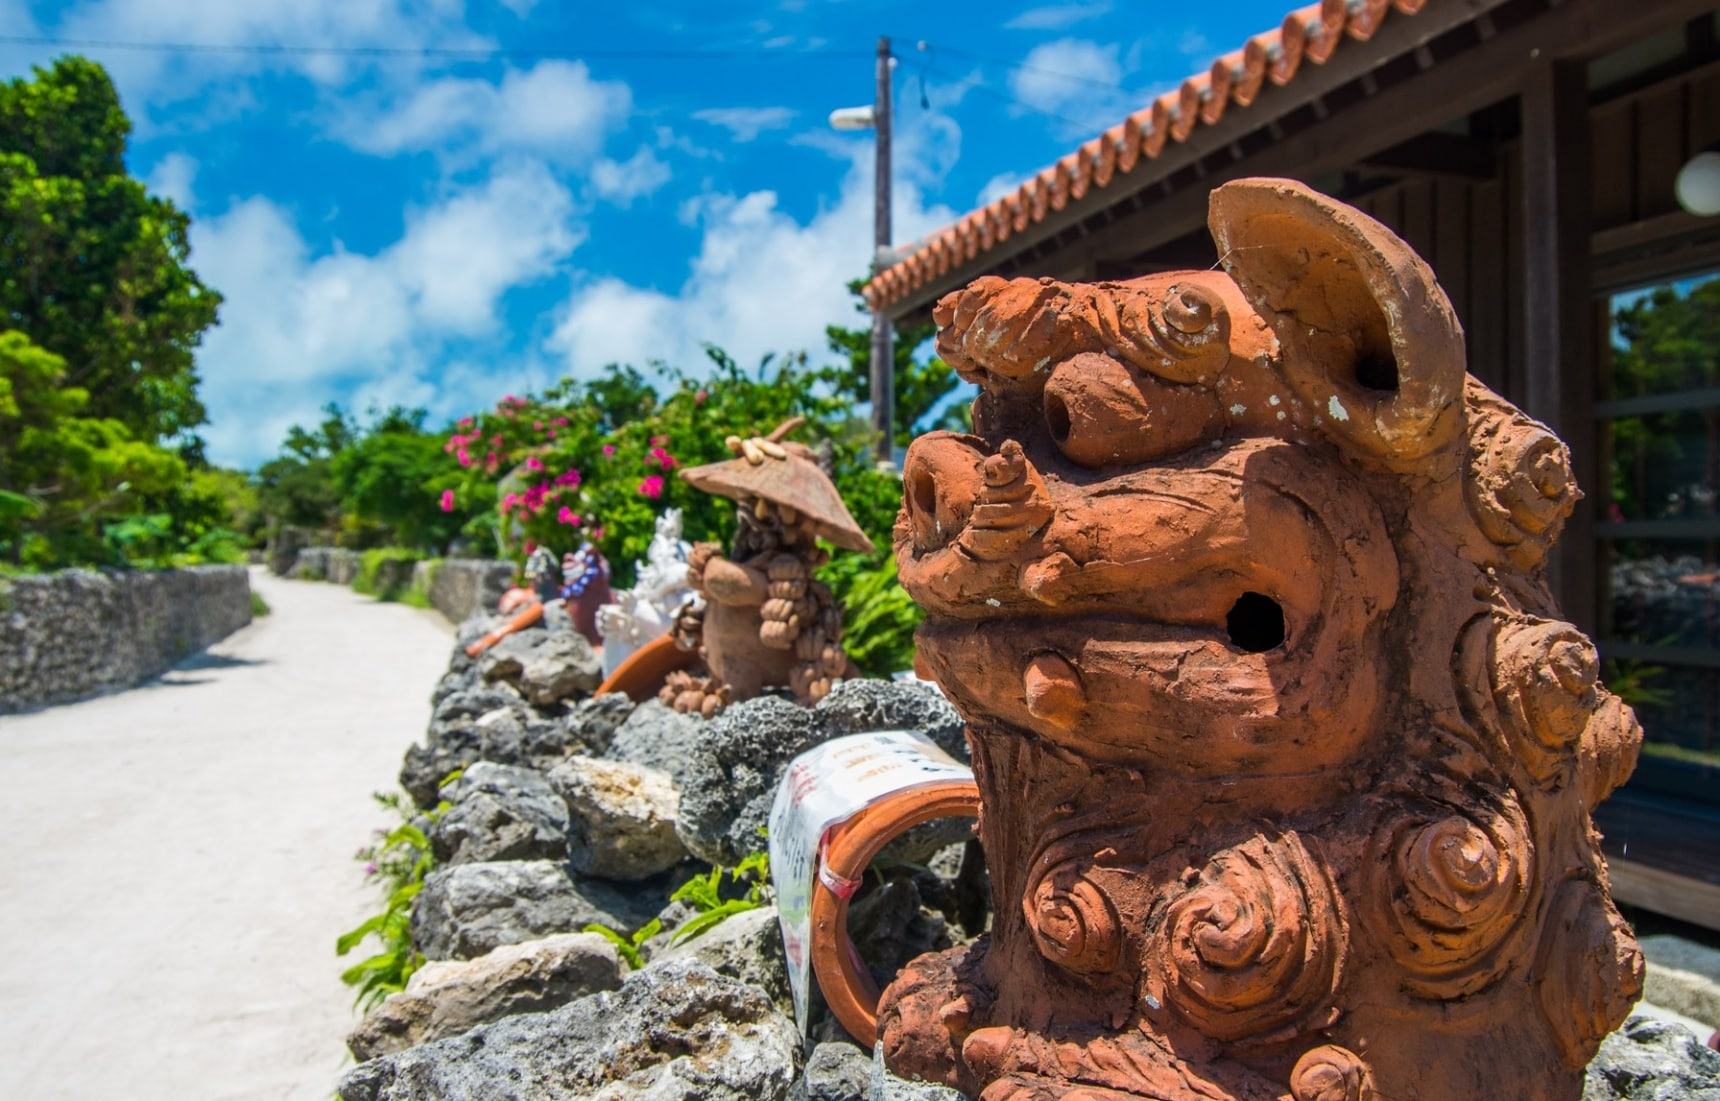 8 Places To Visit On Okinawa's Main Island